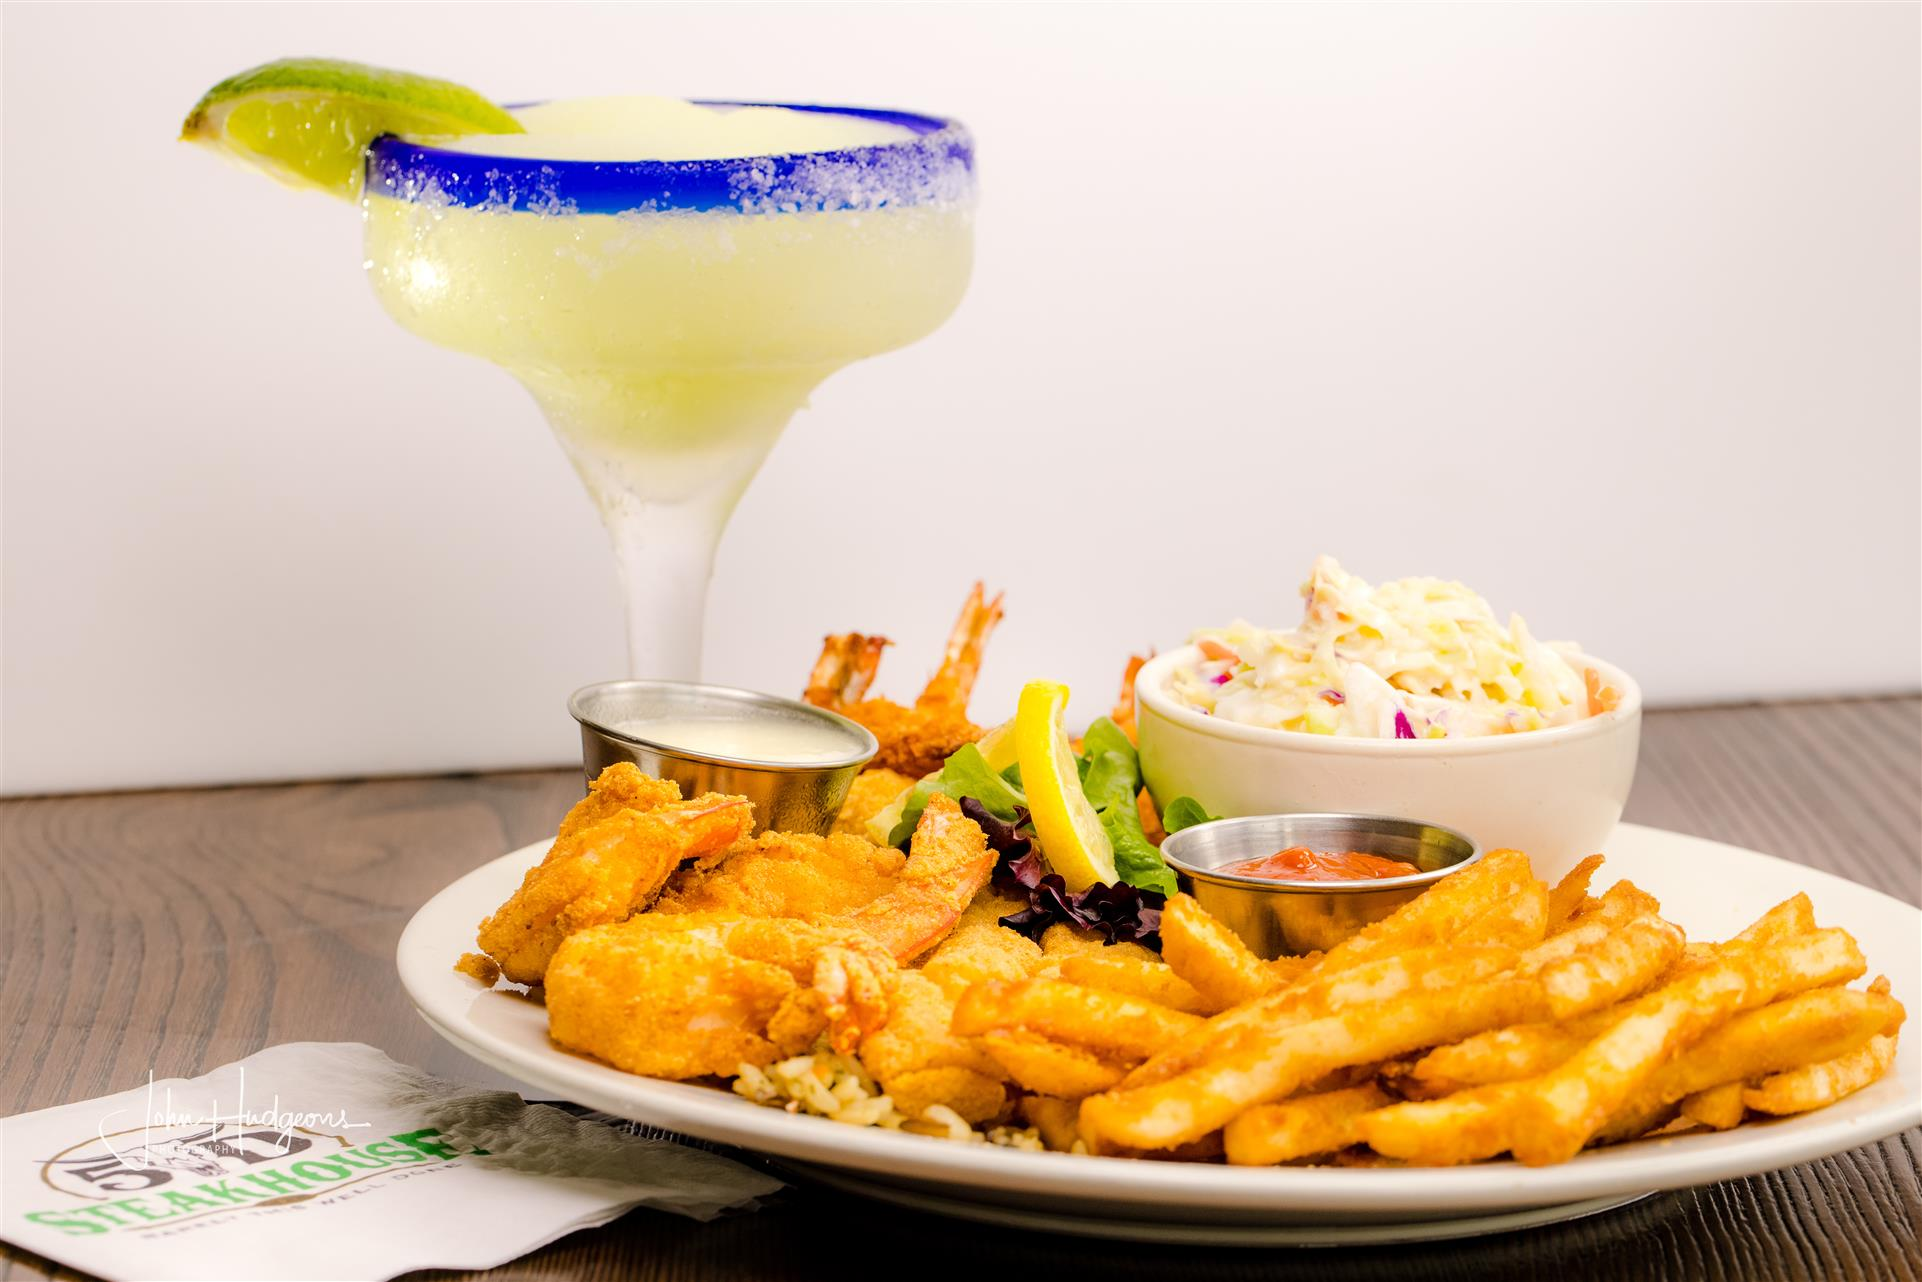 french fries with fried shrimp and coleslaw next to a margarita